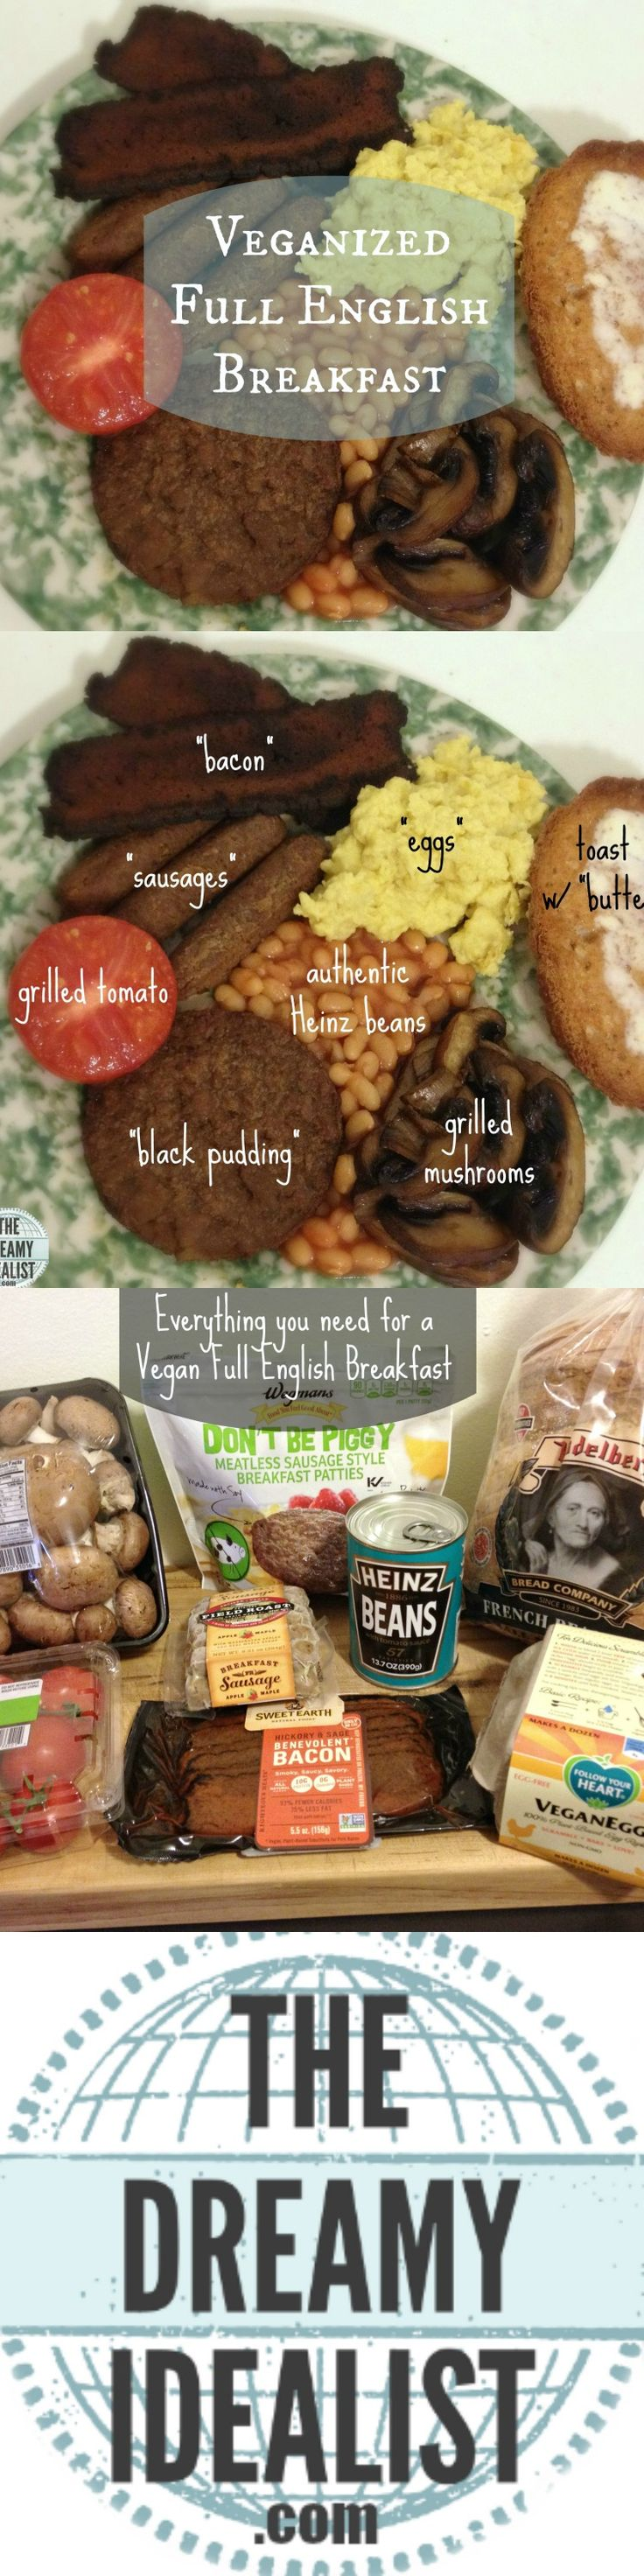 I've long heard of the famous Full English Breakfast (aka 'The Full English' or 'Fry Up') and we decided to give it a go.  With our cuppas in hand, my husband and I set out to veganize it (best as two Americans could).